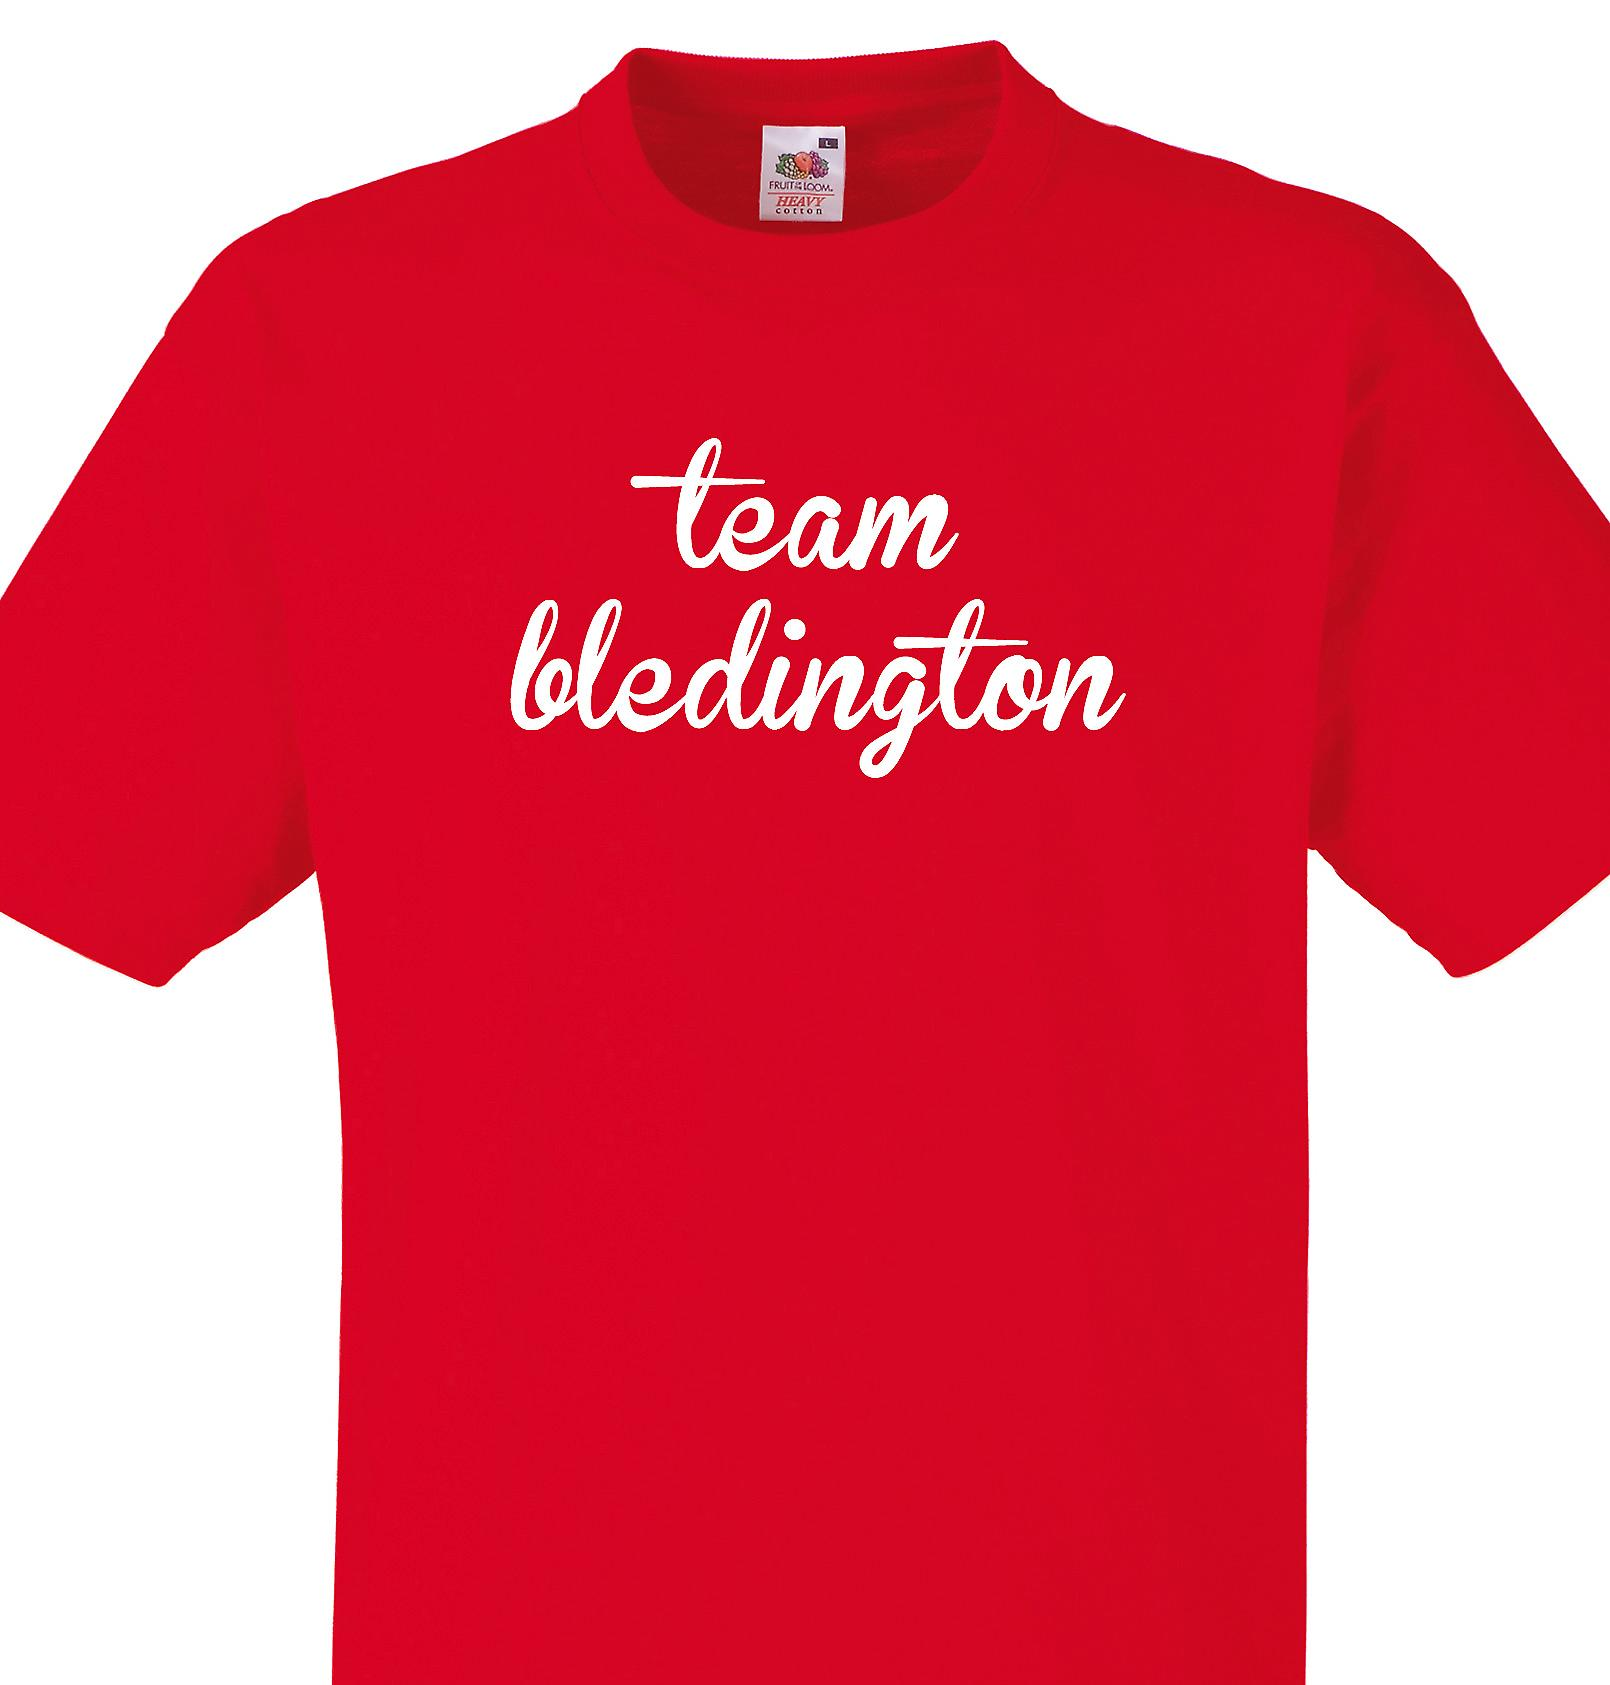 Team Bledington Red T shirt